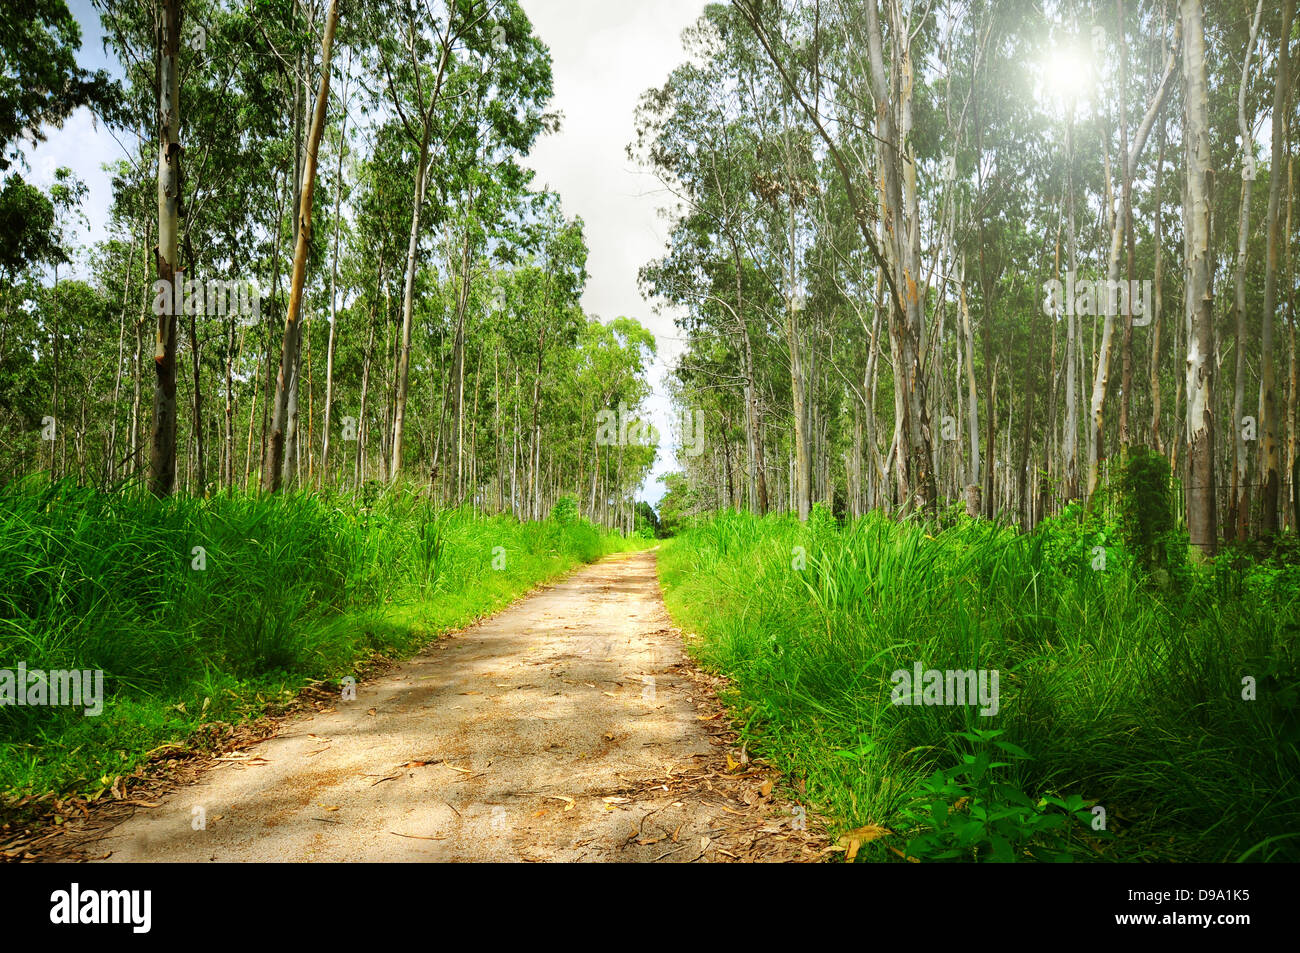 Eucalyptus forest with a dirt road in the middle - Stock Image